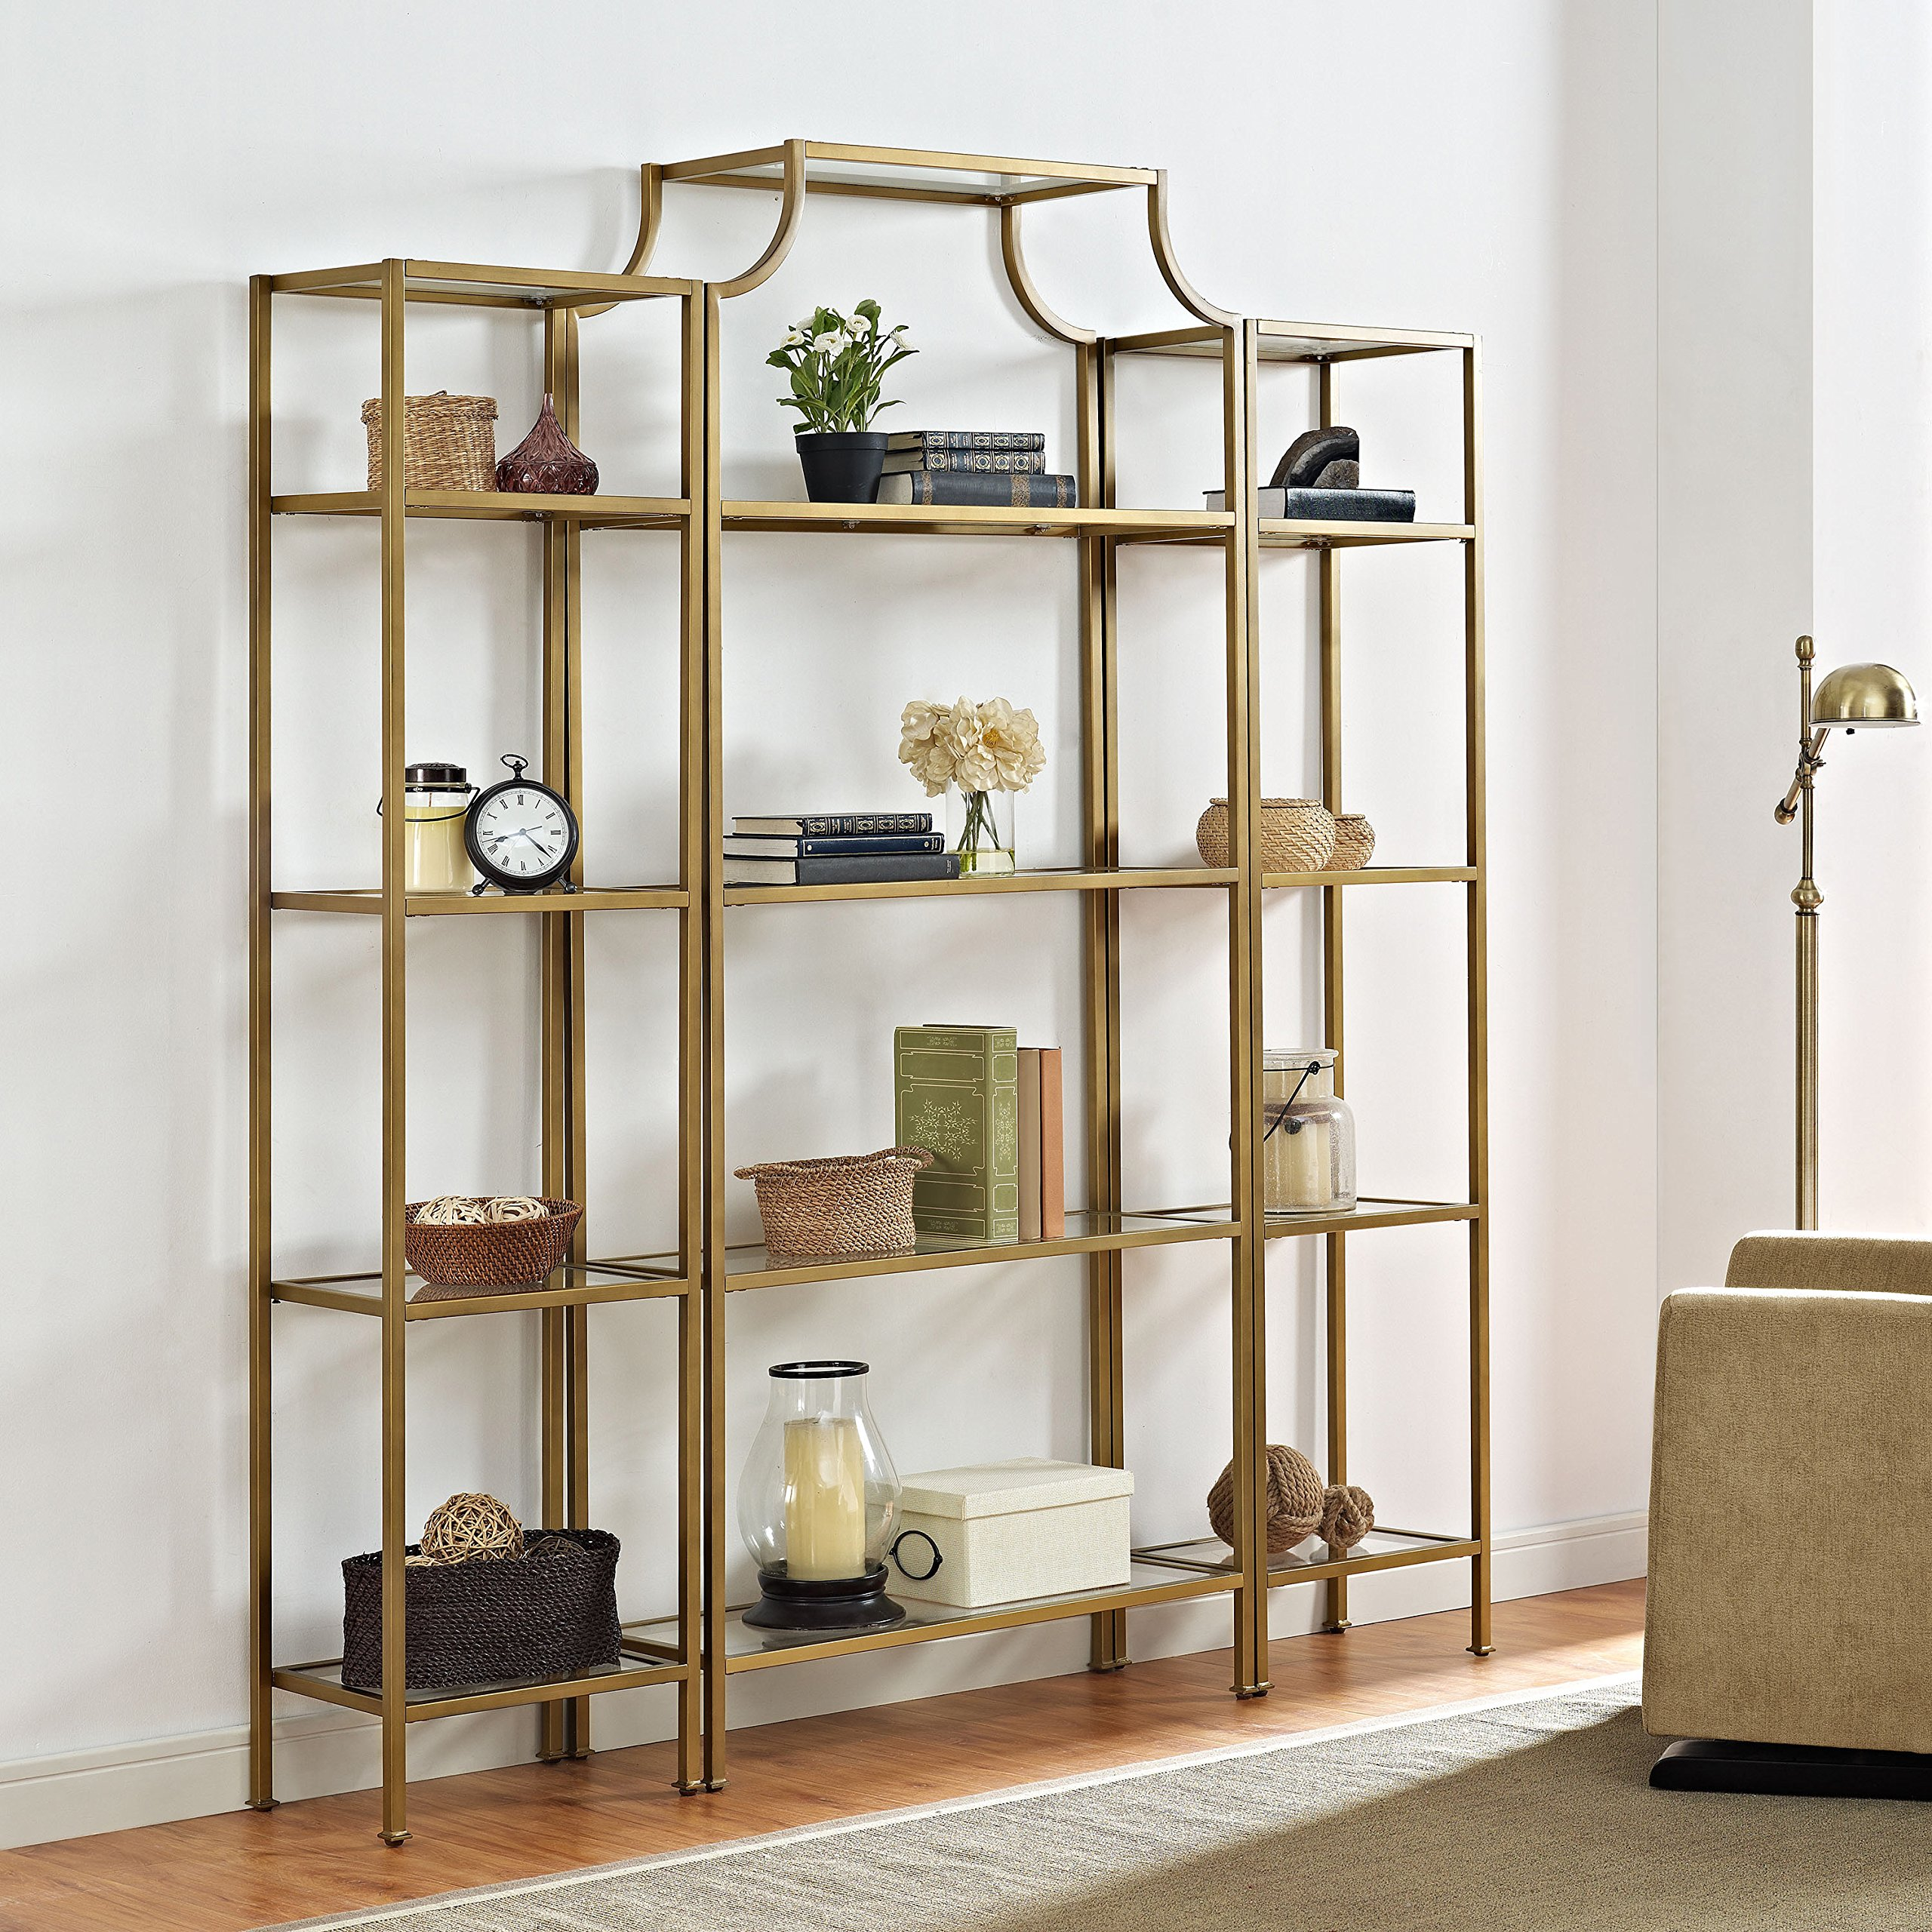 Crosley Furniture Aimee 3-Piece Etagere Bookcase Set - Gold and Glass by Crosley Furniture